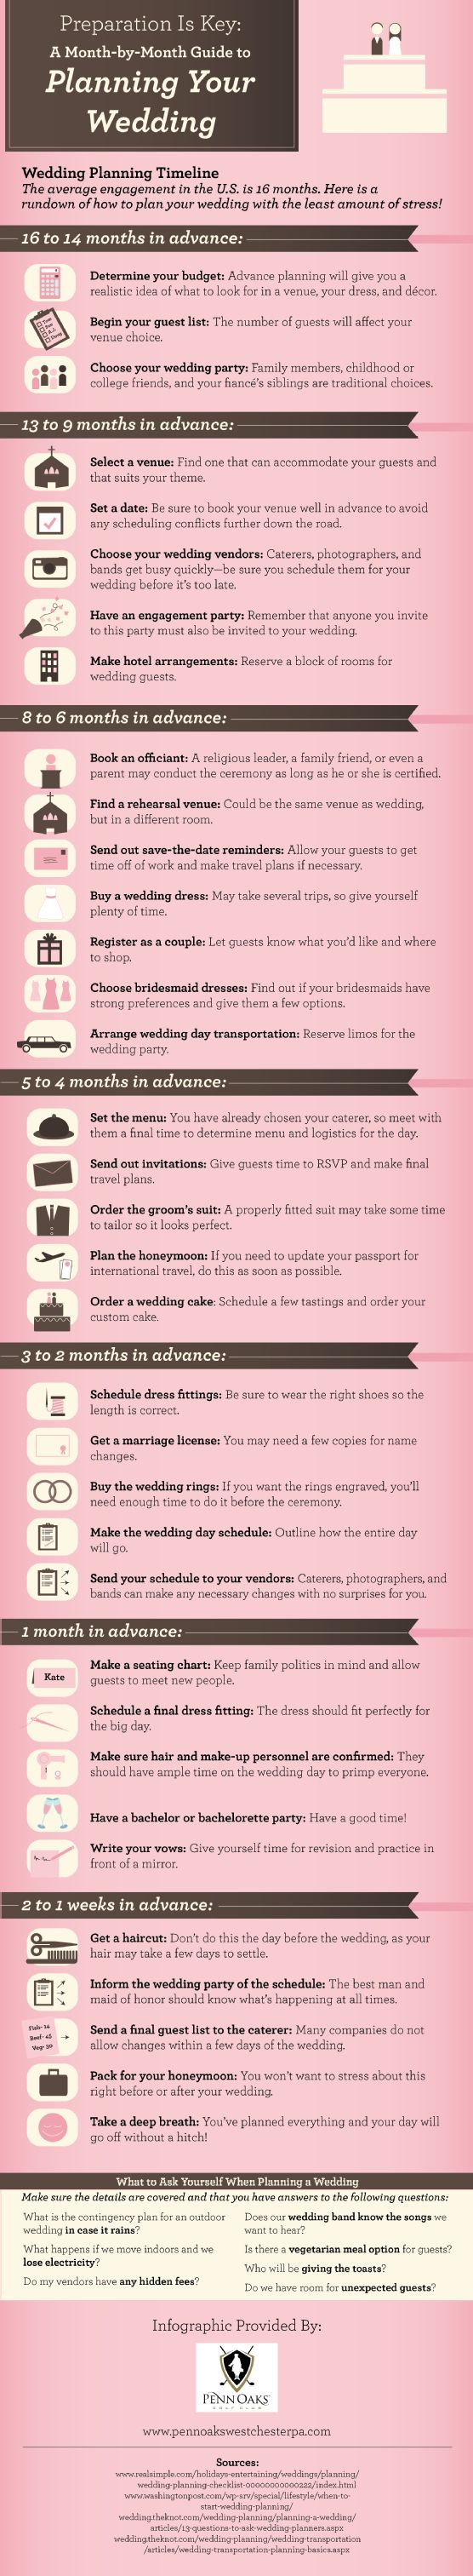 8 months before your wedding, you should book an officiant, send out save-the-dates, buy your dress, and choose bridesmaids dresses. This timeline from a wedding reception venue in West Chester helps you stay organized while planning your wedding. Source: http://www.pennoakswestchesterpa.com/654443/2013/03/01/preparation-is-key-a-month-by-month-guide-to-planning-your-wedding-infographic.html